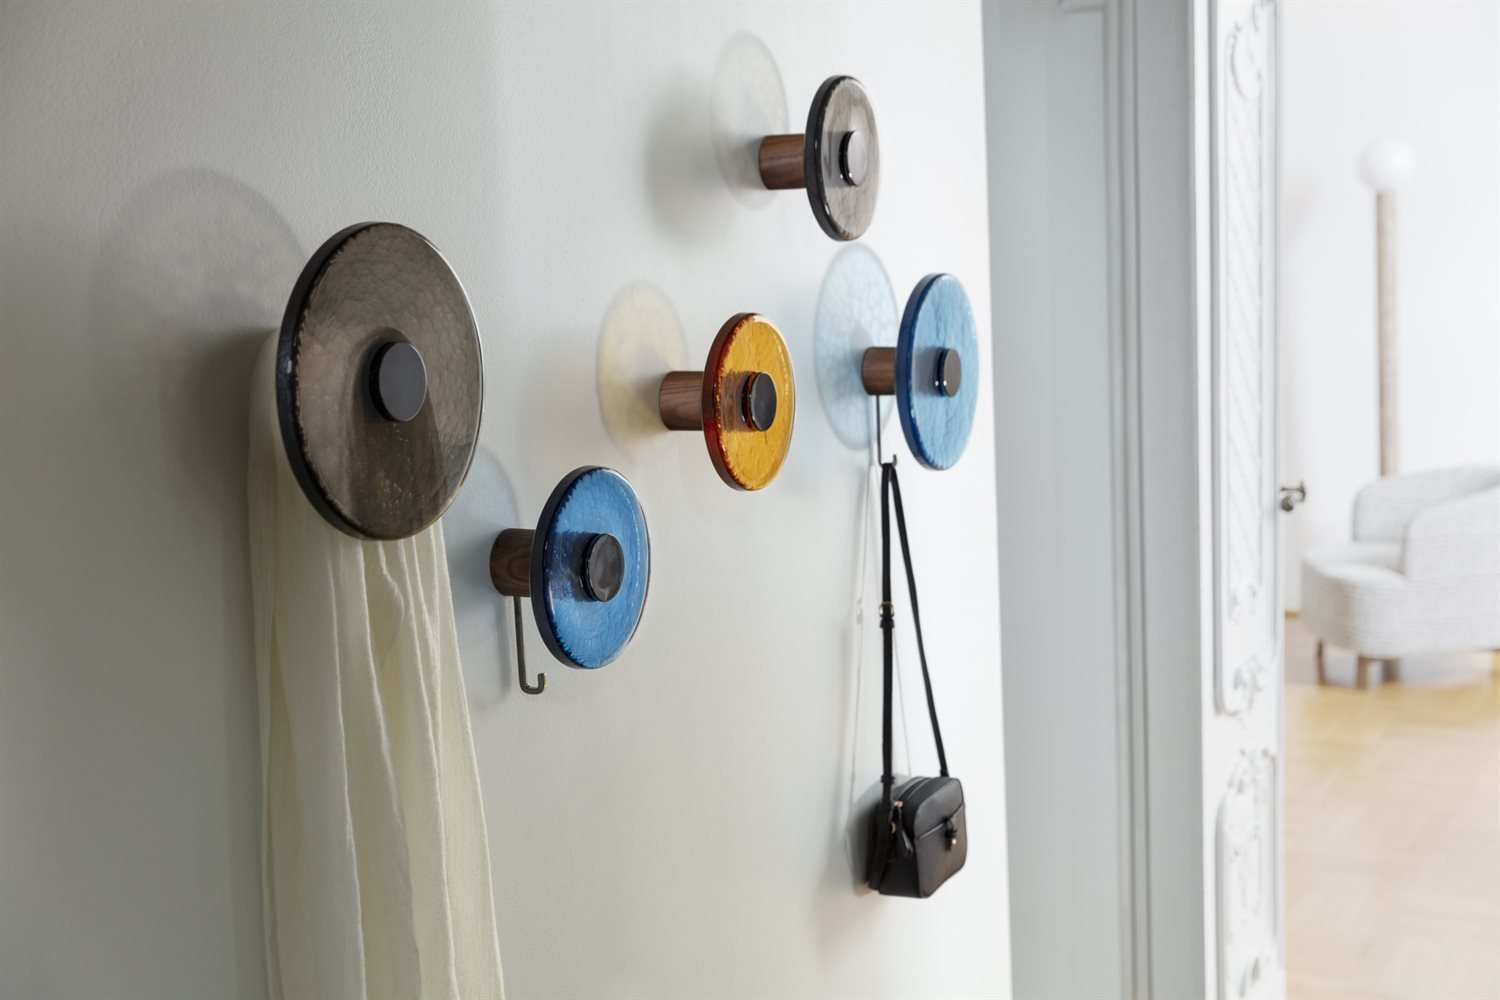 Jupiter Wall Clothes Stand  from Porada, designed by C. Ballabio